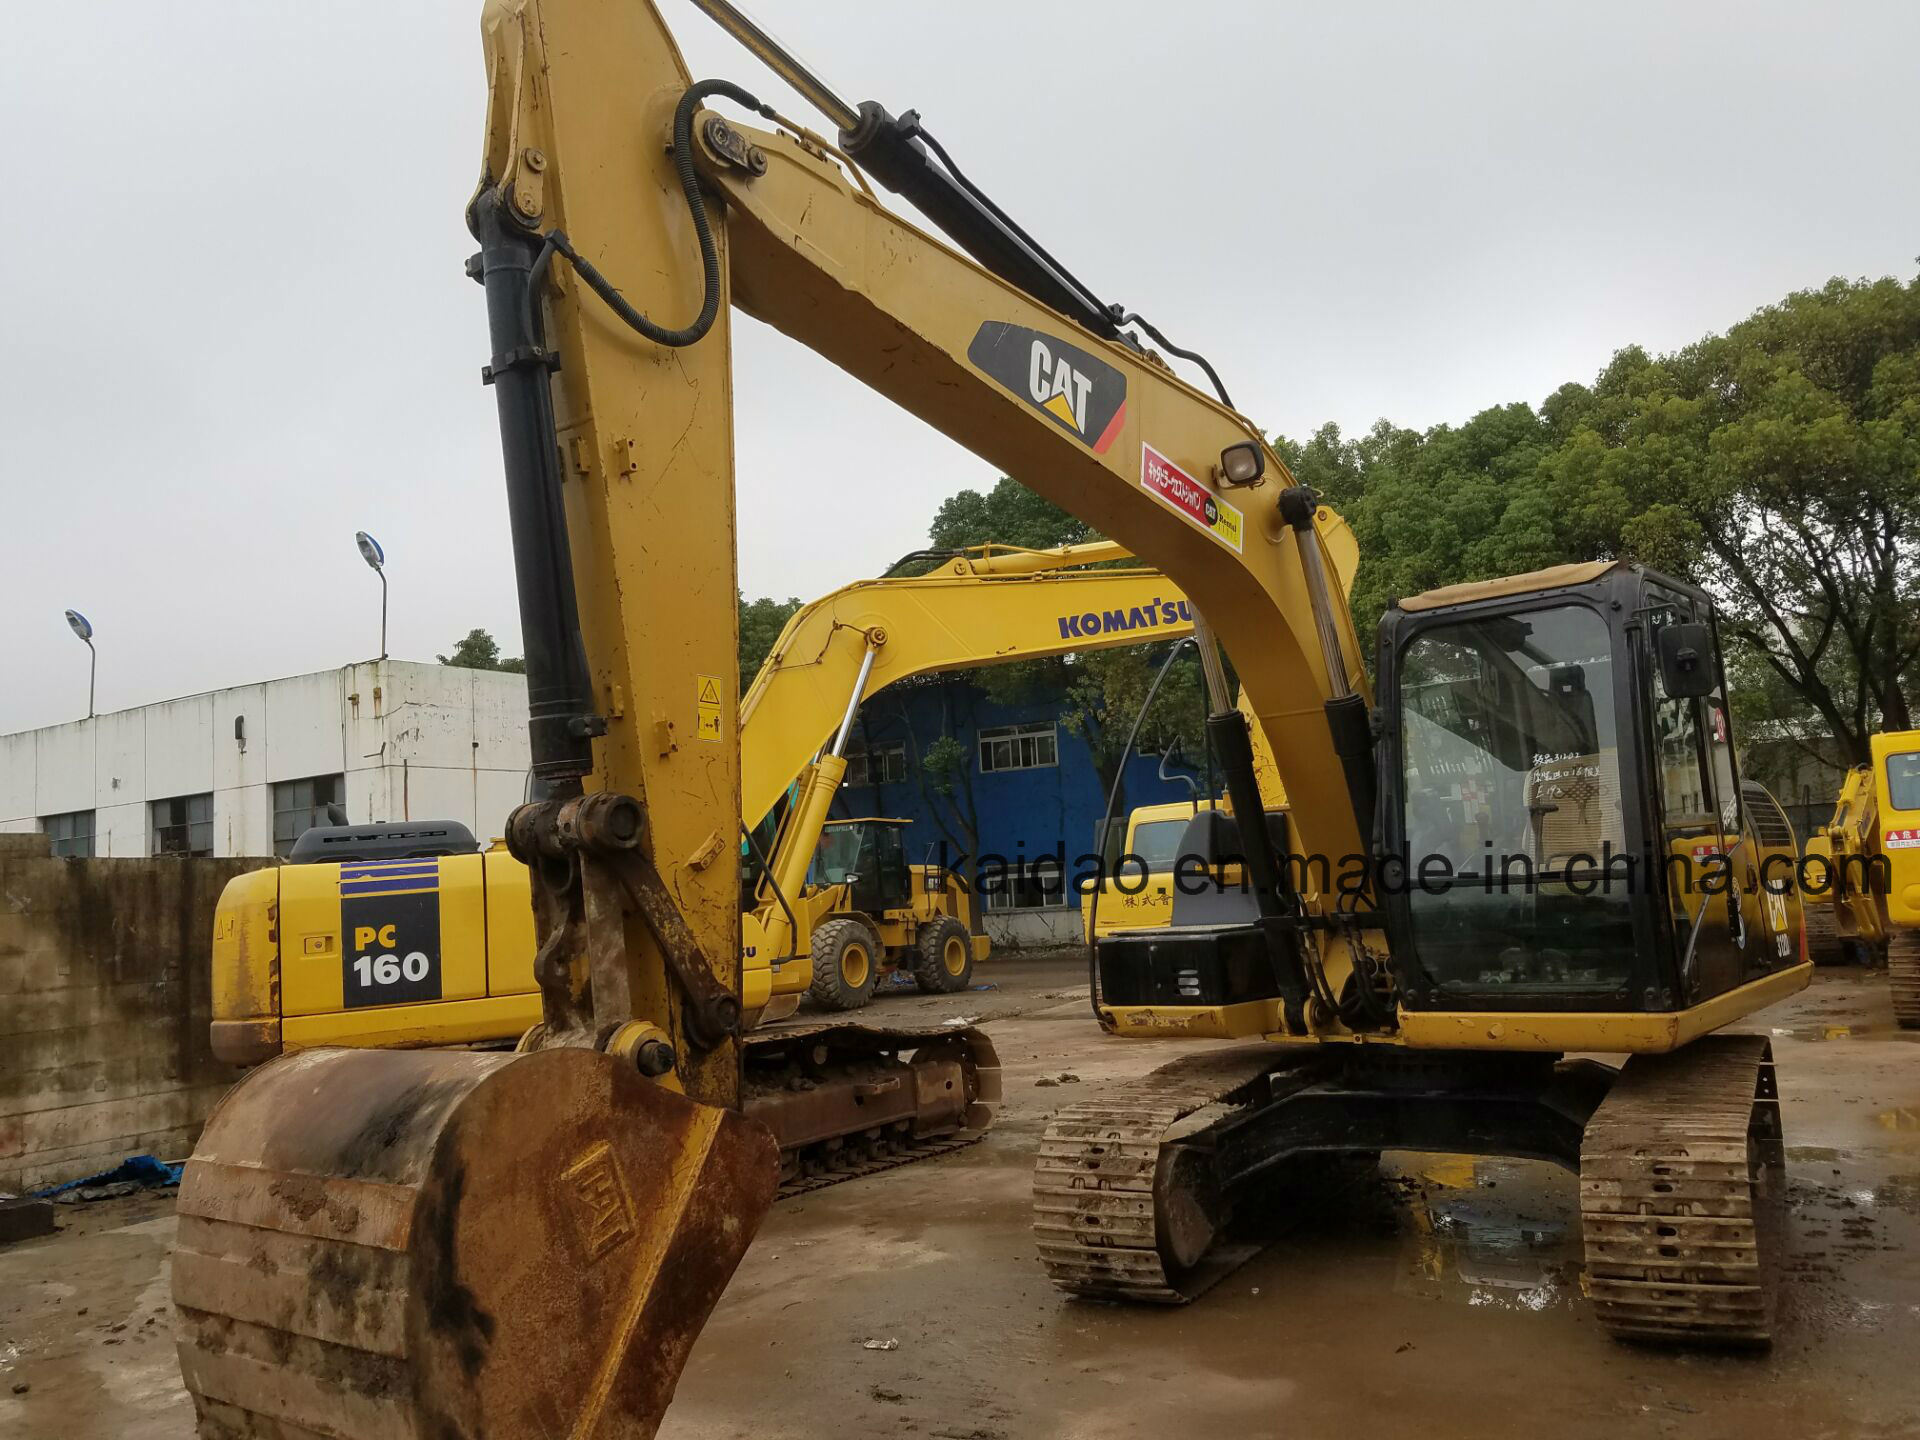 hight resolution of china used cat 312d excavator cat used 312 digger cat excavator 312d china used cat excavator cat 312d excavator